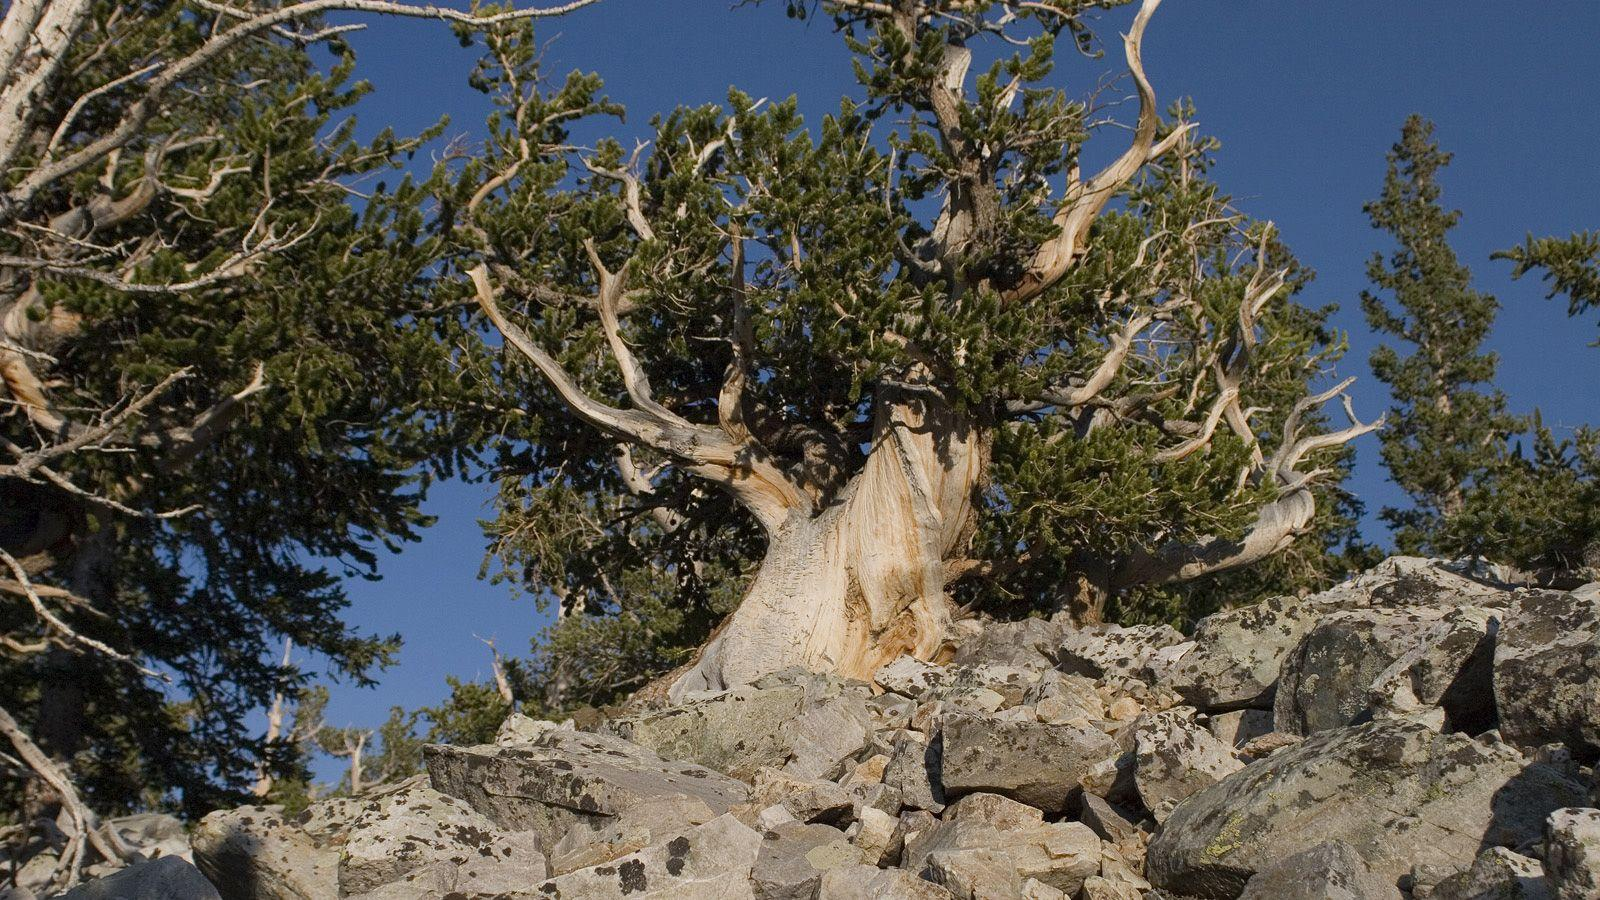 Bristlecone Pines in Great Basin National Park. Photo © Tee Poole